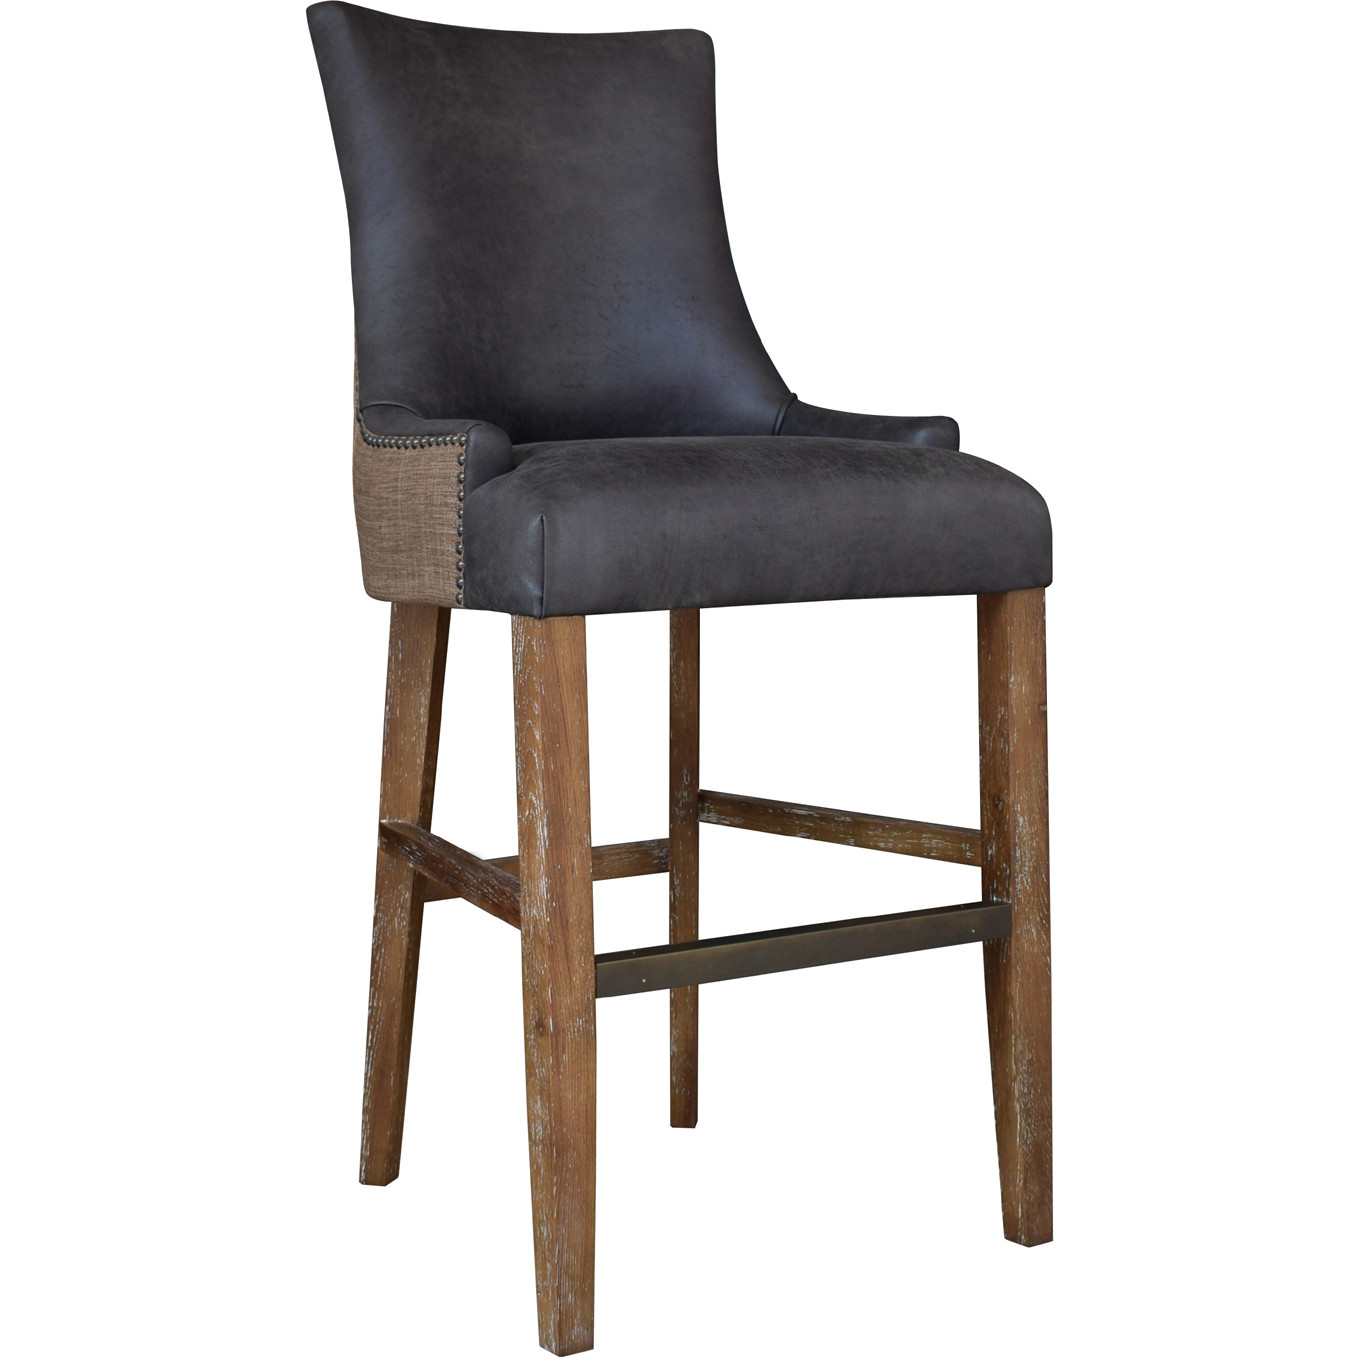 Terrific Sanibel Island Bar Stool In Brown Eco Leather Dark Linen By Padmas Plantation Caraccident5 Cool Chair Designs And Ideas Caraccident5Info